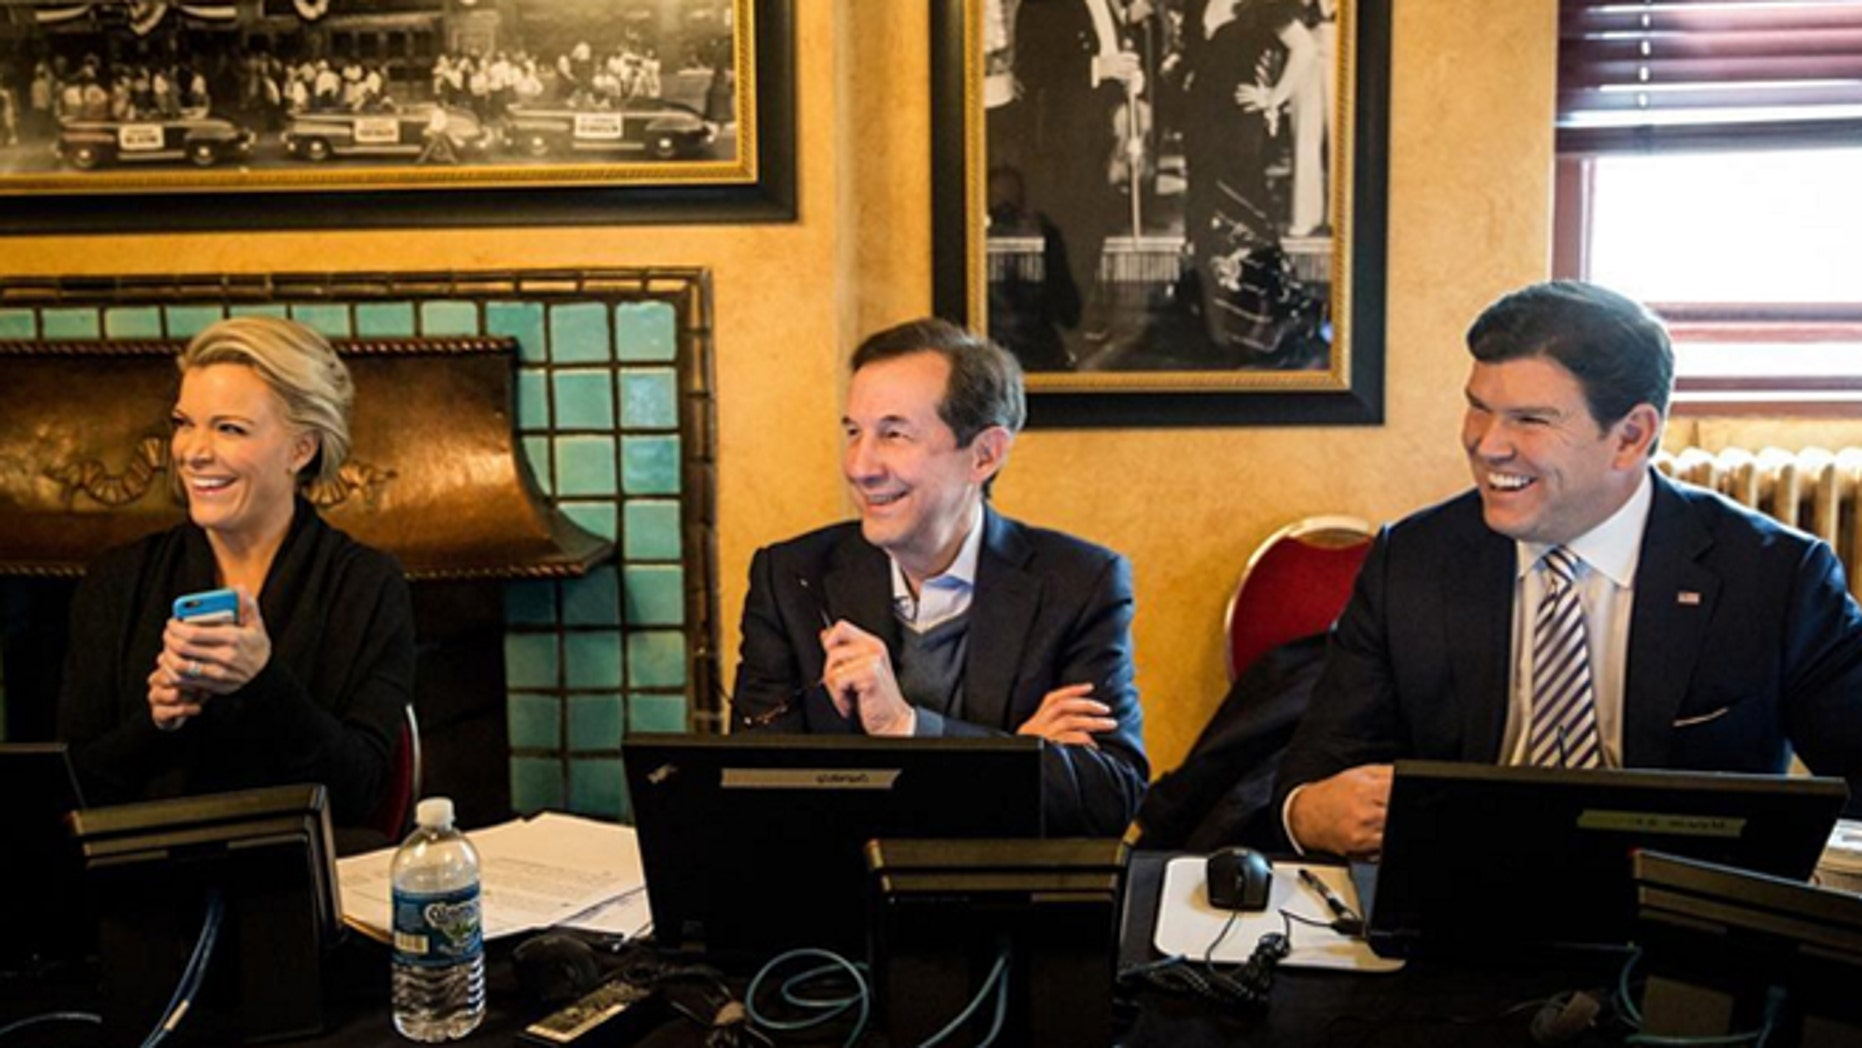 A light moment during debate preparations at the Fox Theatre in Detroit.